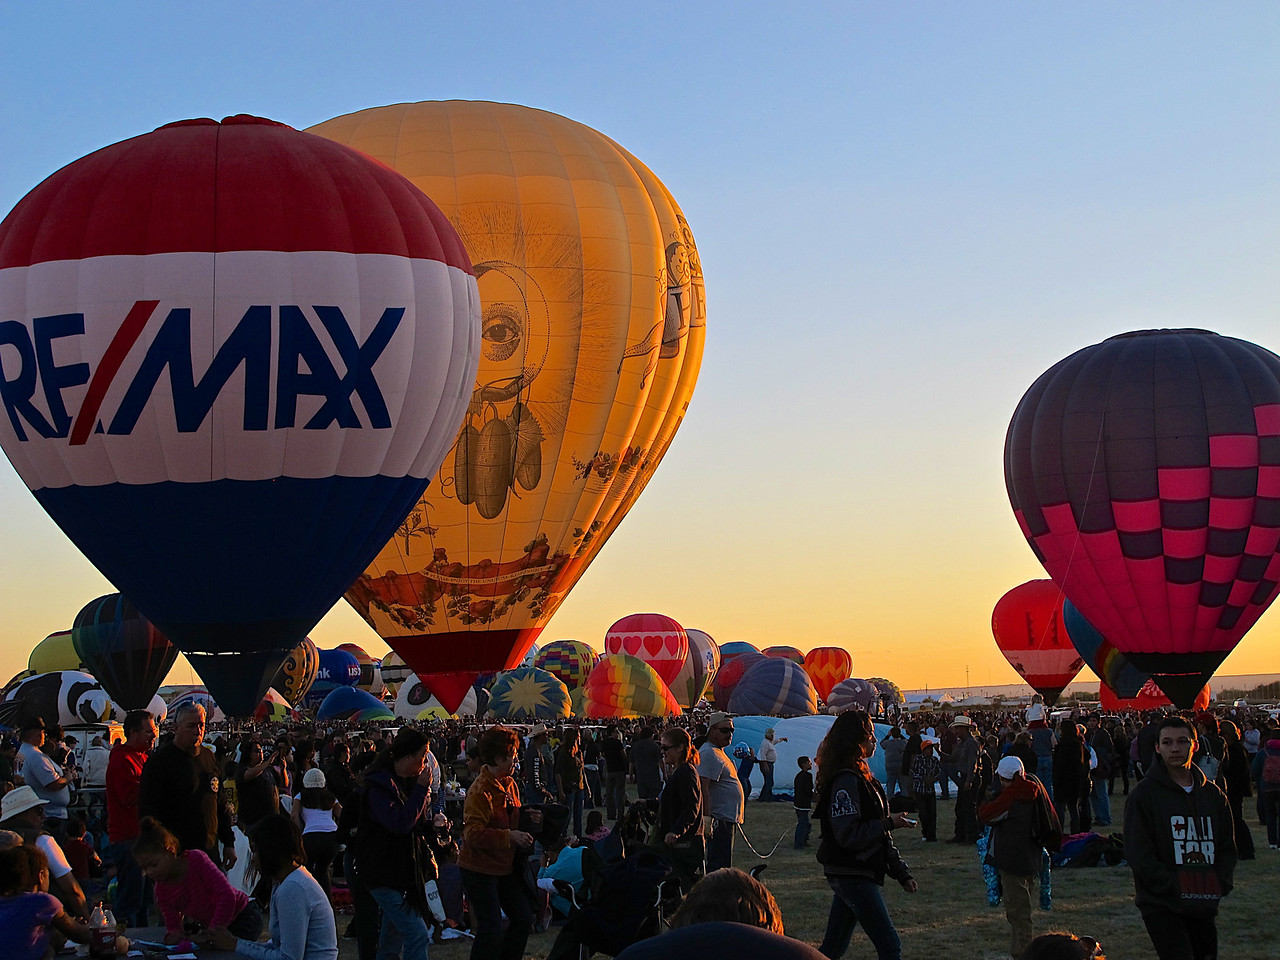 The first fiesta ended up as a gathering of 13 balloons on April 8, 1972, sponsored by KOB. The first event was located in the parking lot of the Coronado Center Shopping Mall with 20,000 spectators and with balloonists from Arizona, California, Iowa, Michigan, Minnesota, Nevada and Texas taking part.